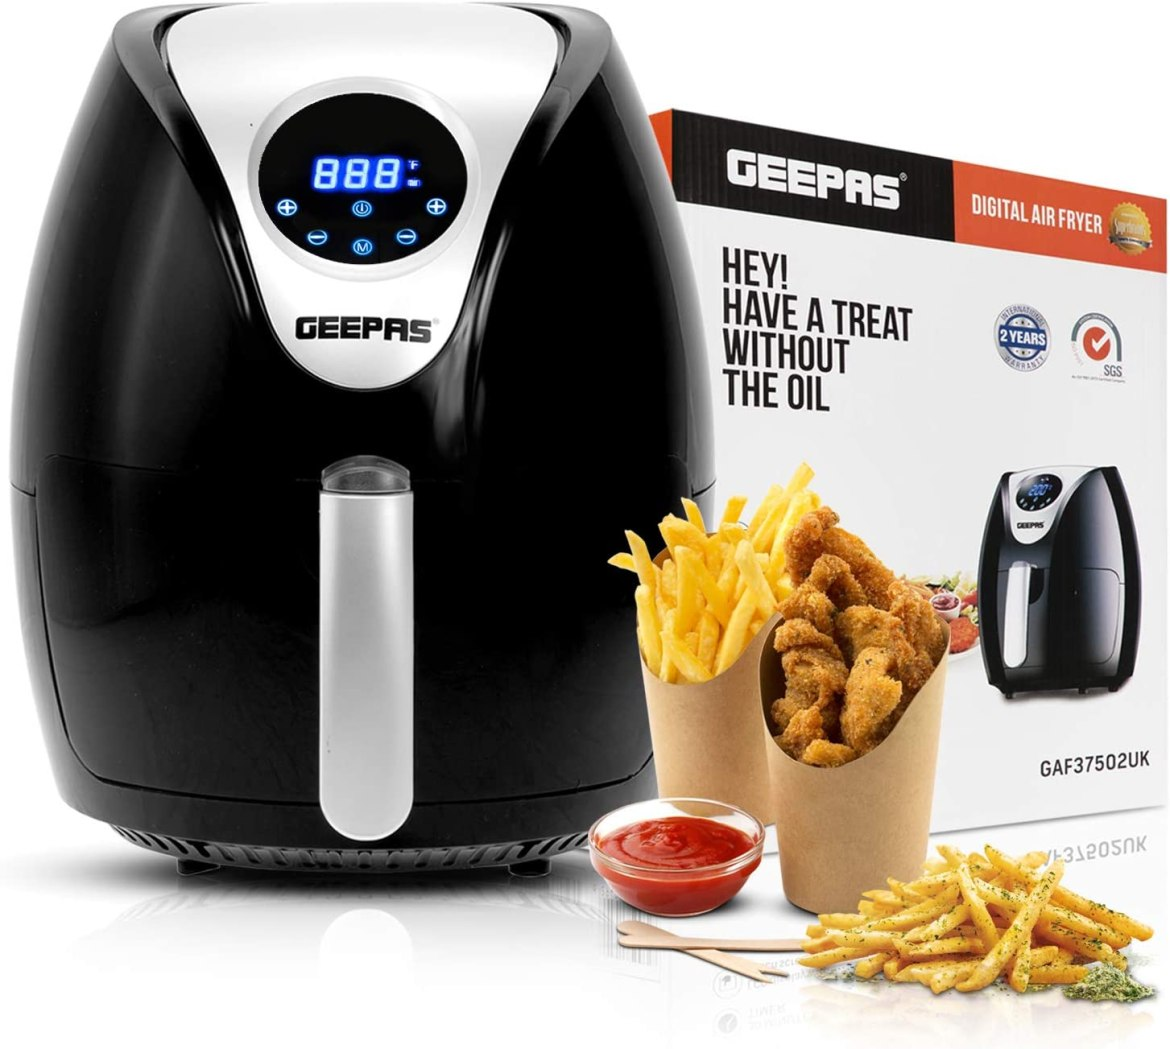 Geepas 1350W Digital Air Fryer 3.2L Hot Air Circulation Technology for Oil  Free Low Fat Dry Fry Cooking Healthy Food – Non-Stick Basket, Dishwasher  Safe, Overheat Protection - 2 Years Warranty: Amazon.co.uk: